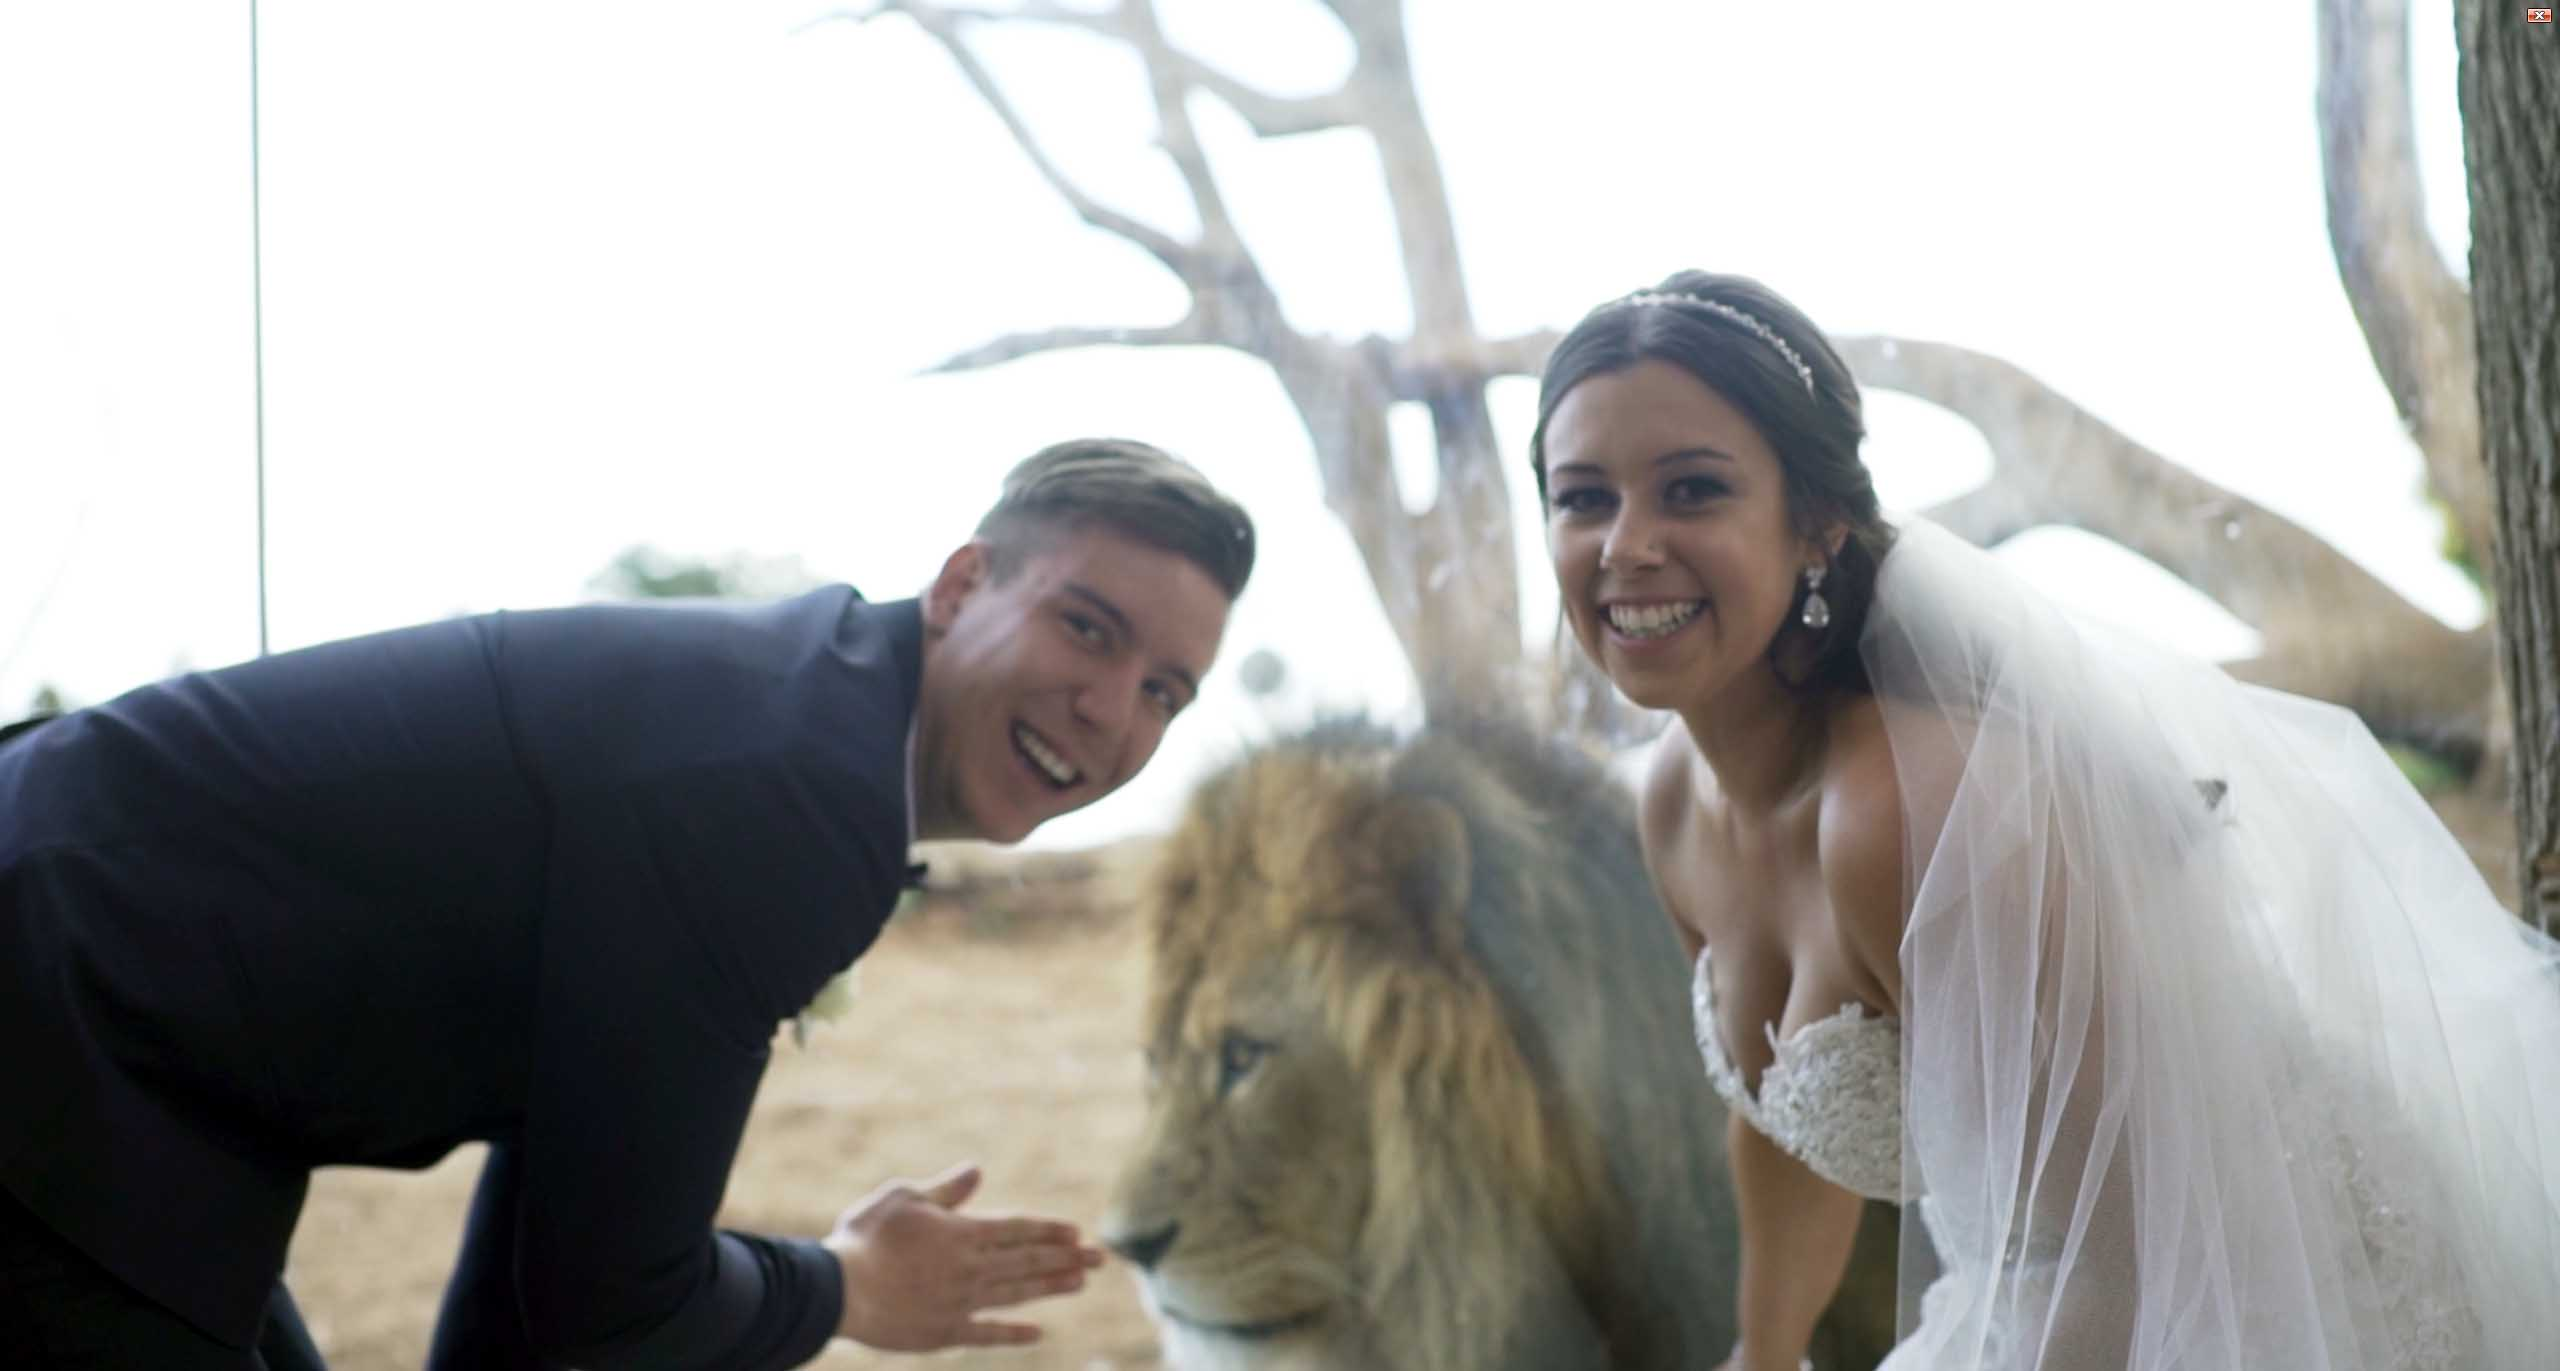 Werribee Open Range Zoo Wedding